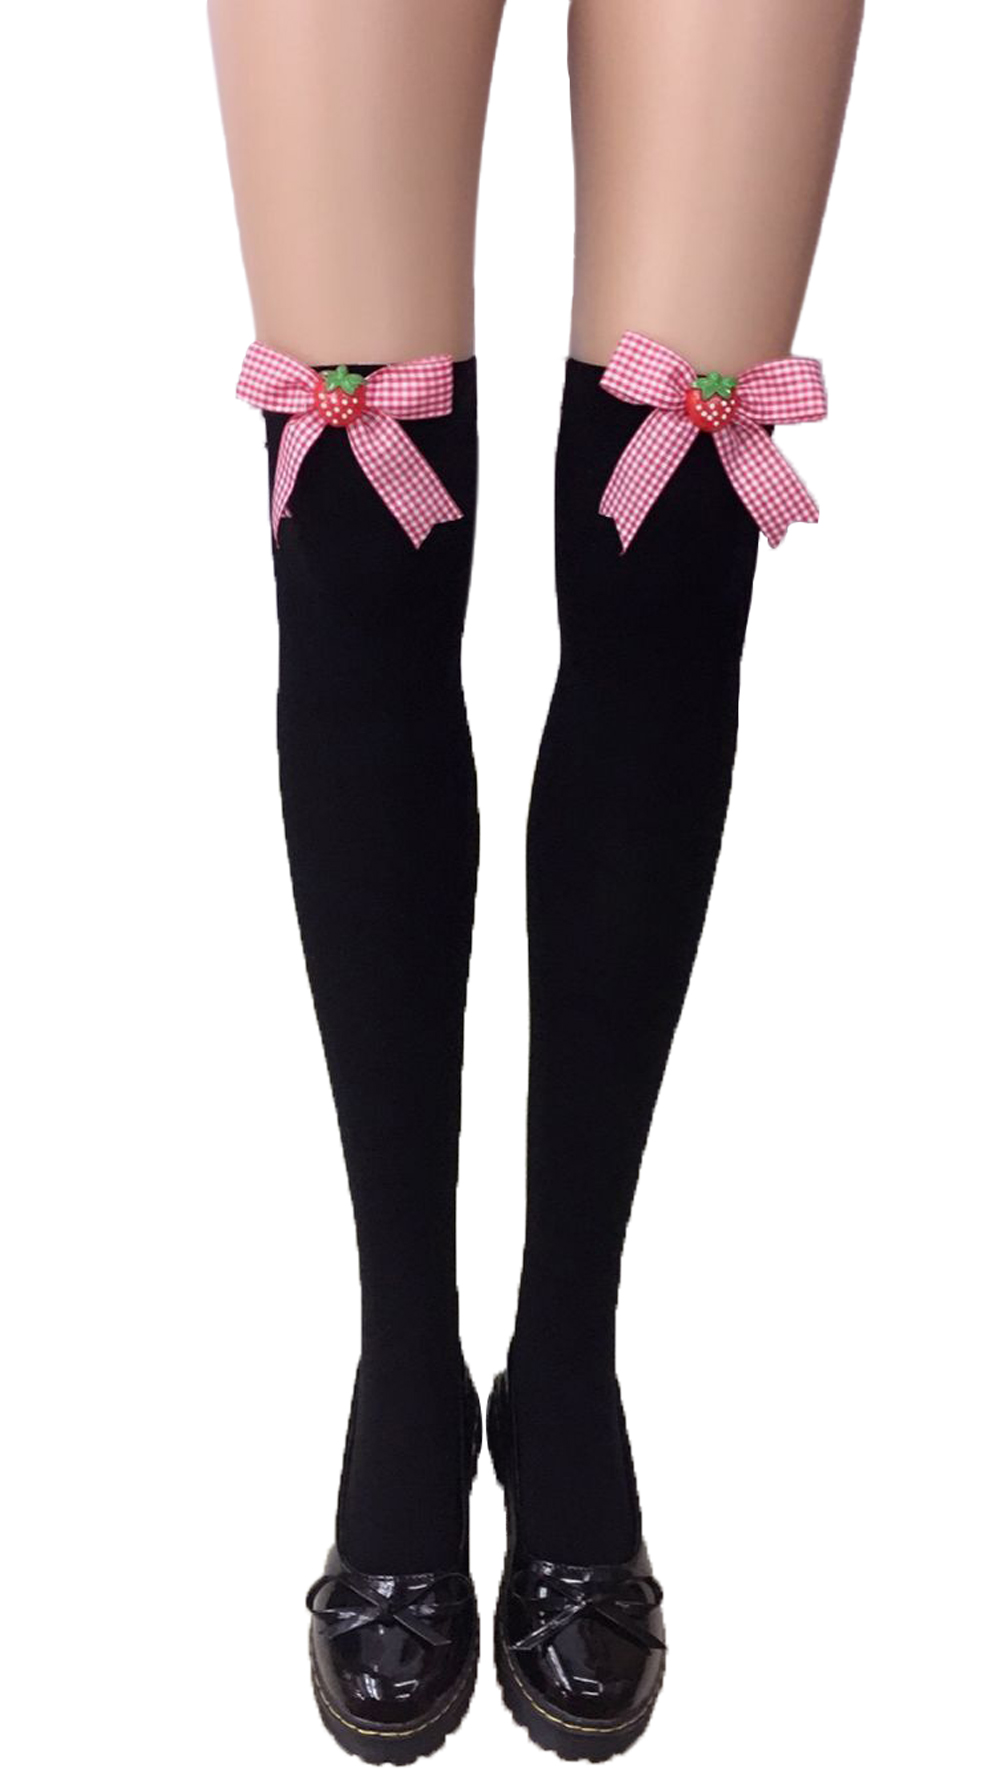 F8195-4 Thigh Stocking with Satin Bows Opaque Over The Knee Halloween Socks